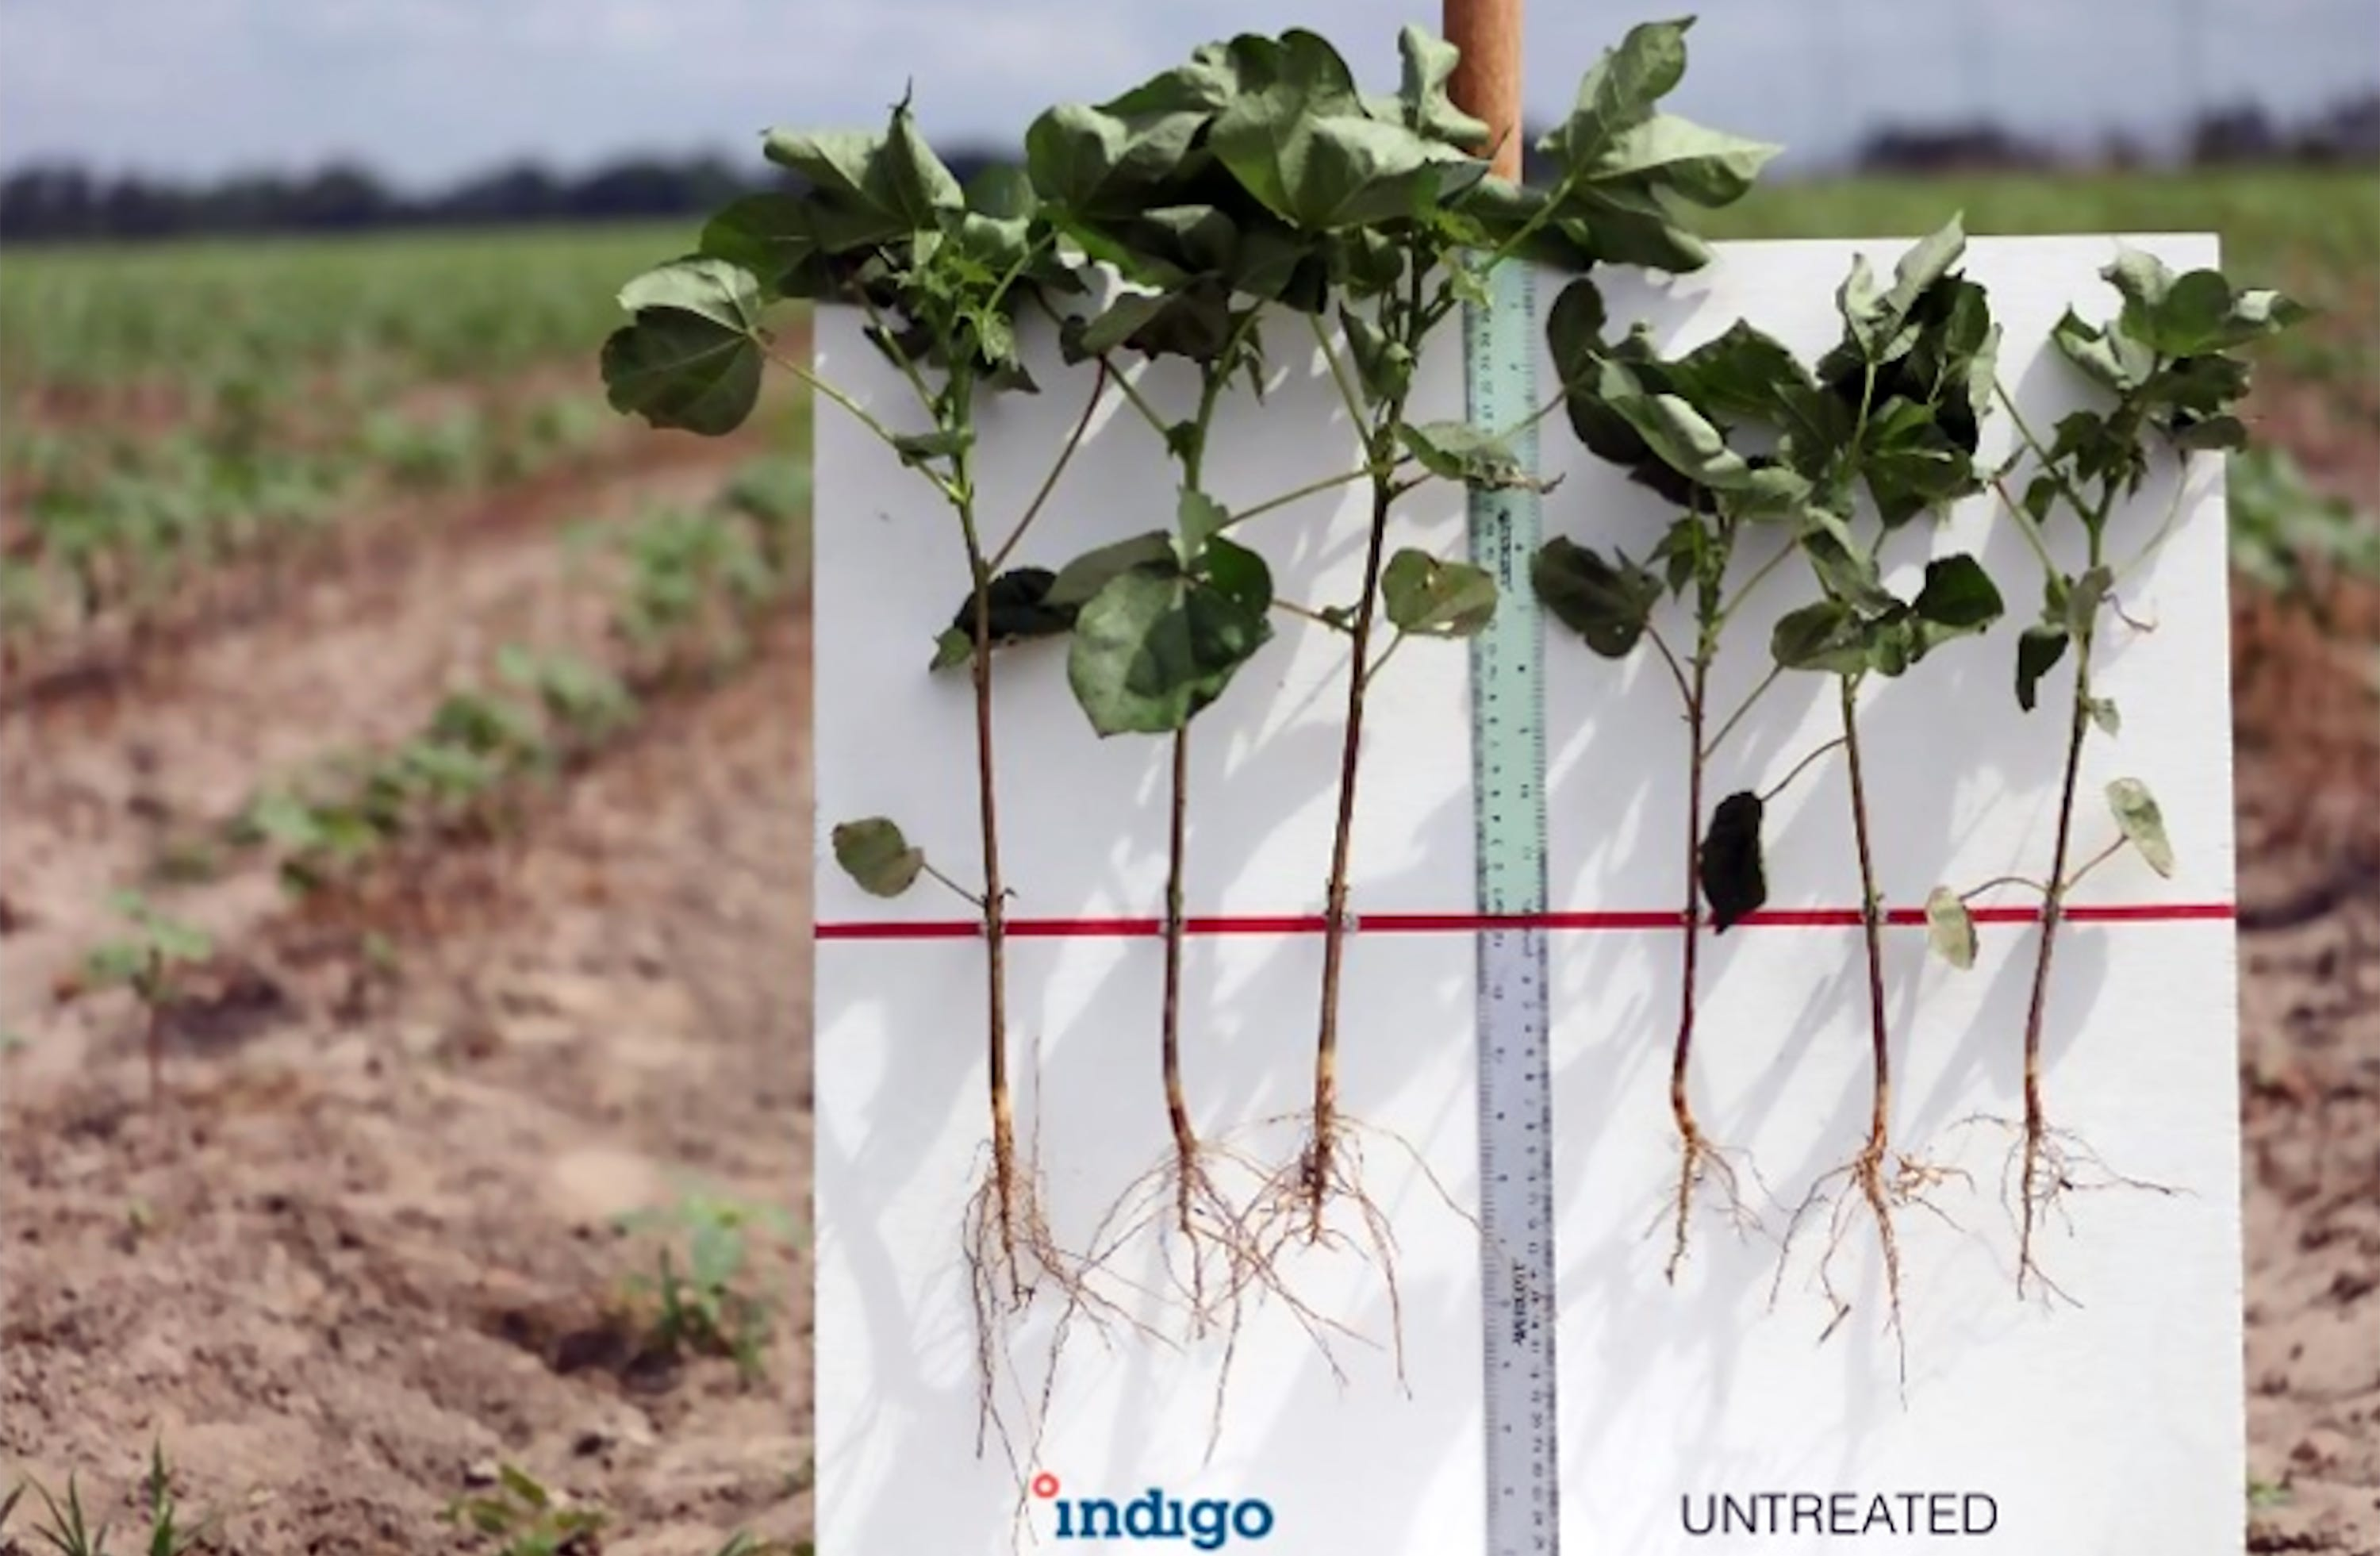 In 2016, Indigo Ag launched its first commercial crop: cottonseed with beneficial microbes that produced 10 percent more yield under stress conditions including drought.